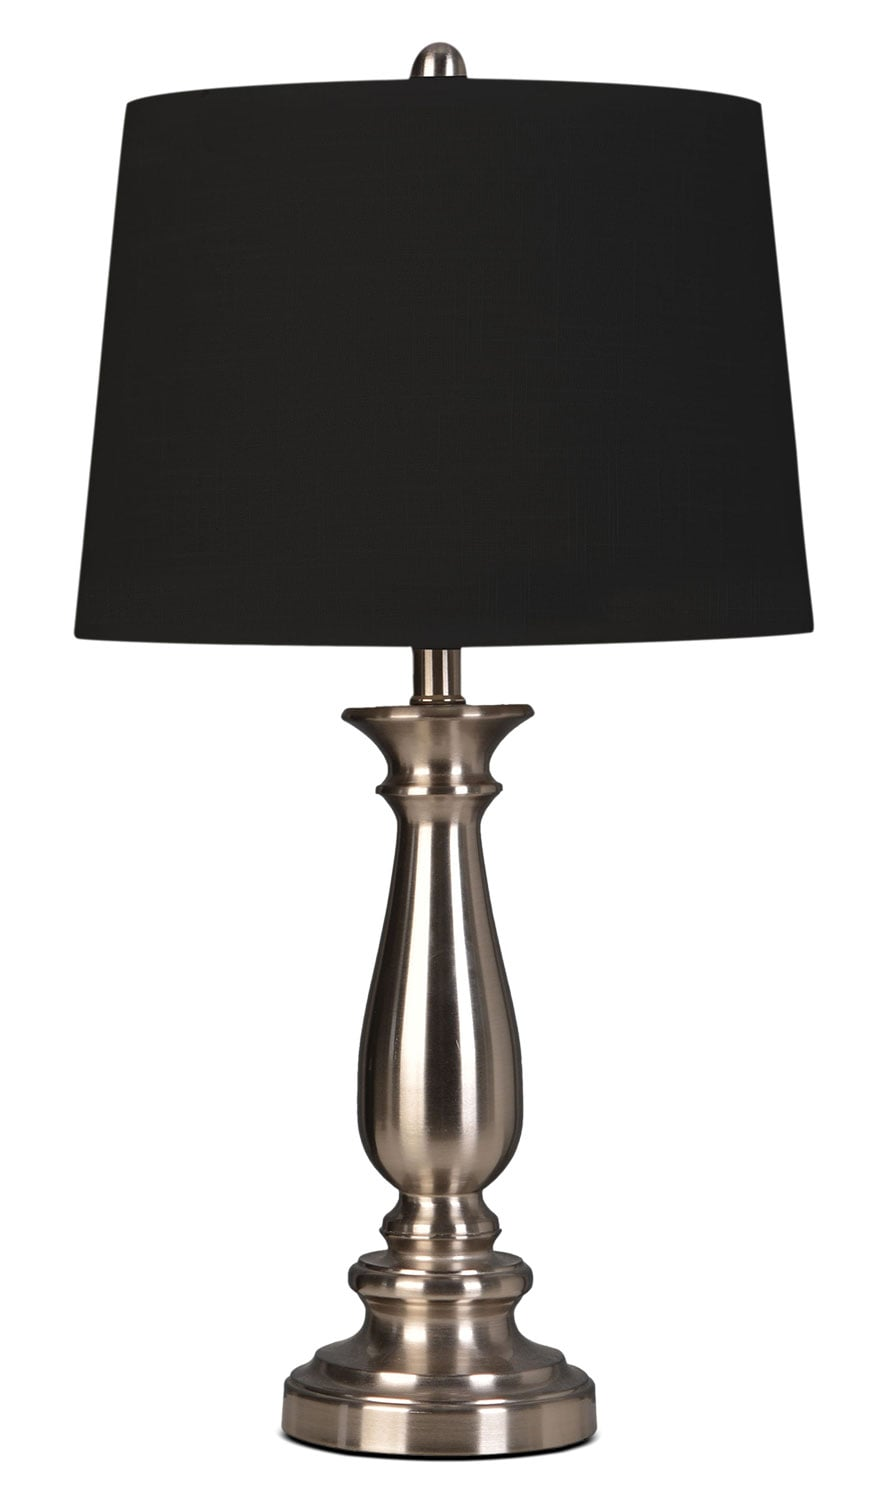 "Lawrence 25"" Table Lamp - Chrome"